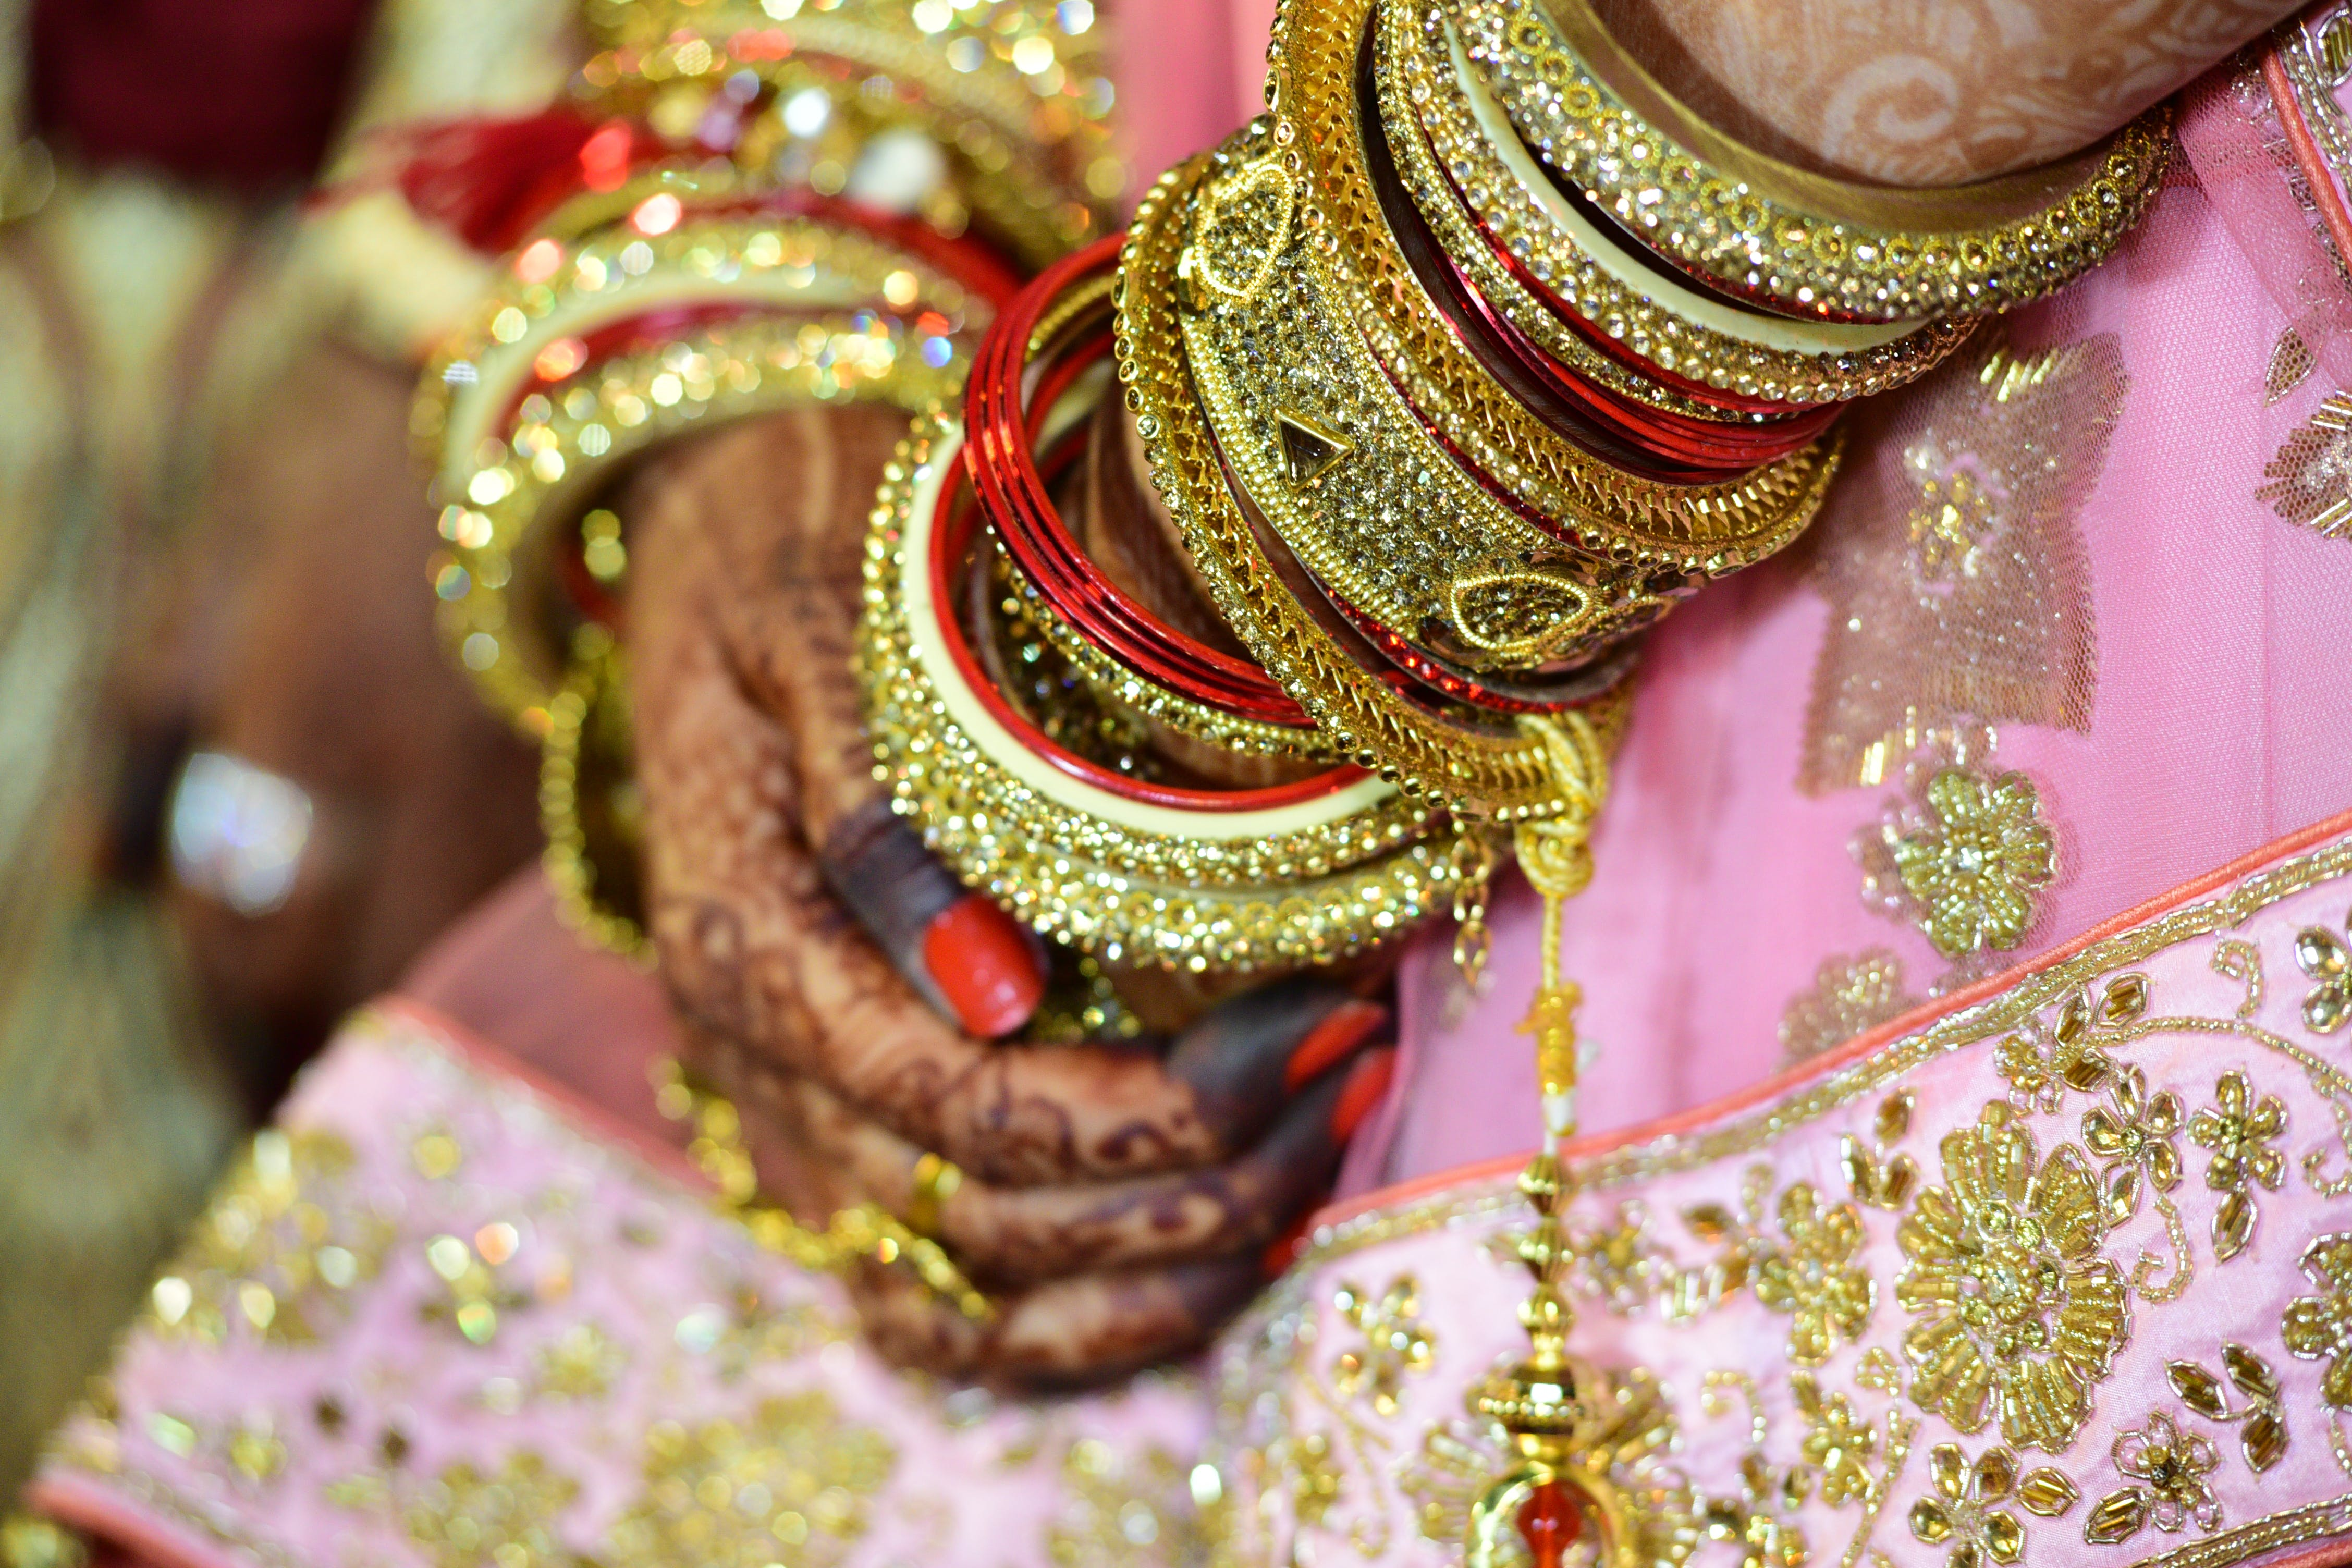 Woman Wearing Gold-colored Bangle and Mehndi